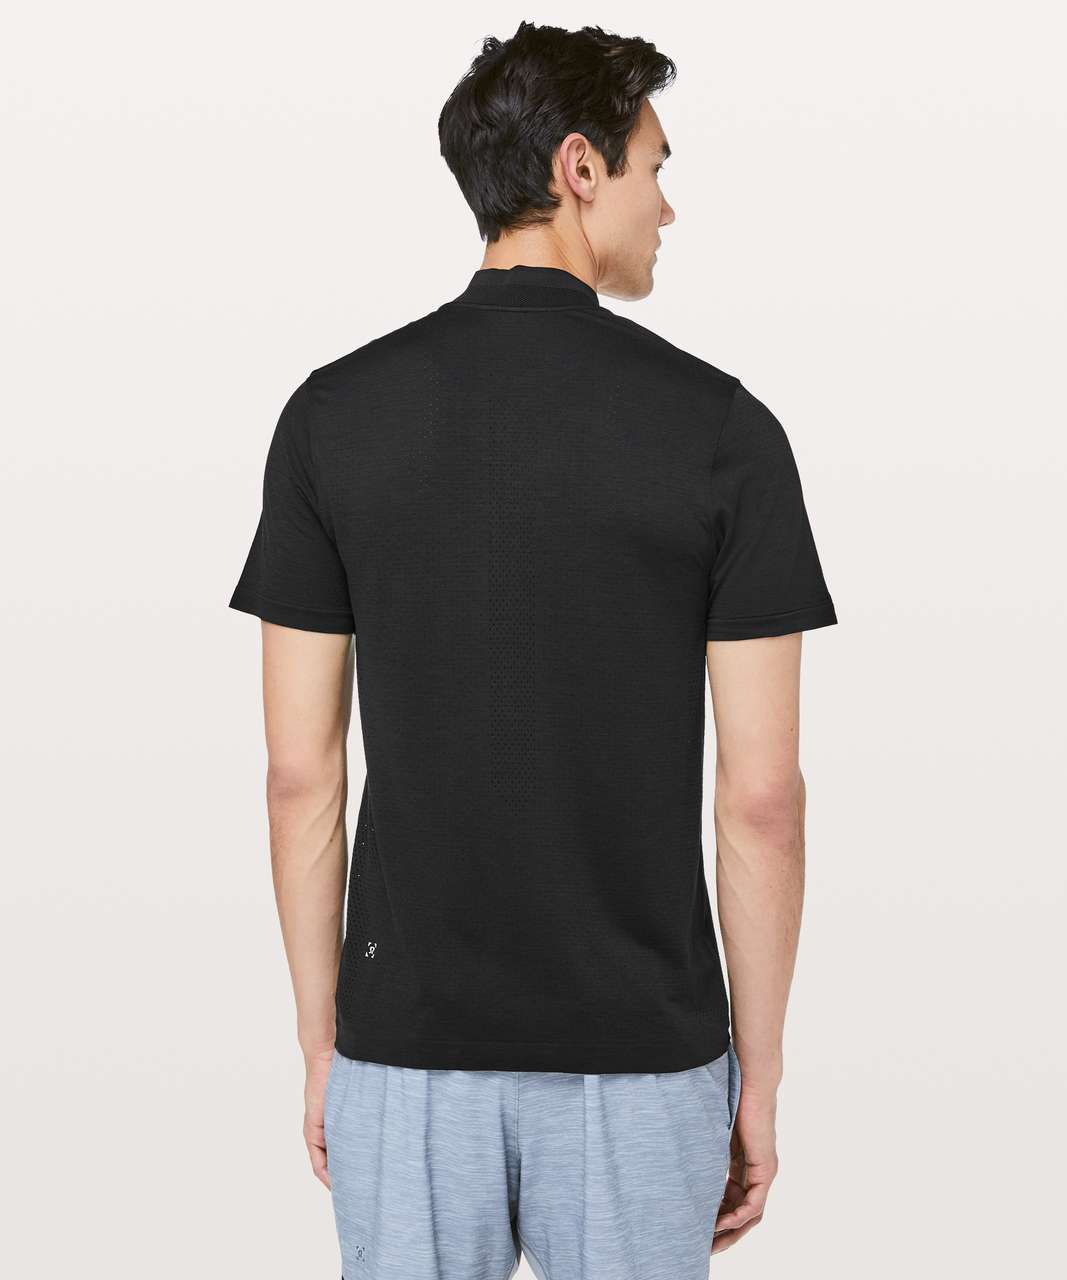 Lululemon Metal Vent Tech Surge Short Sleeve 1/2 Zip - Black / Black